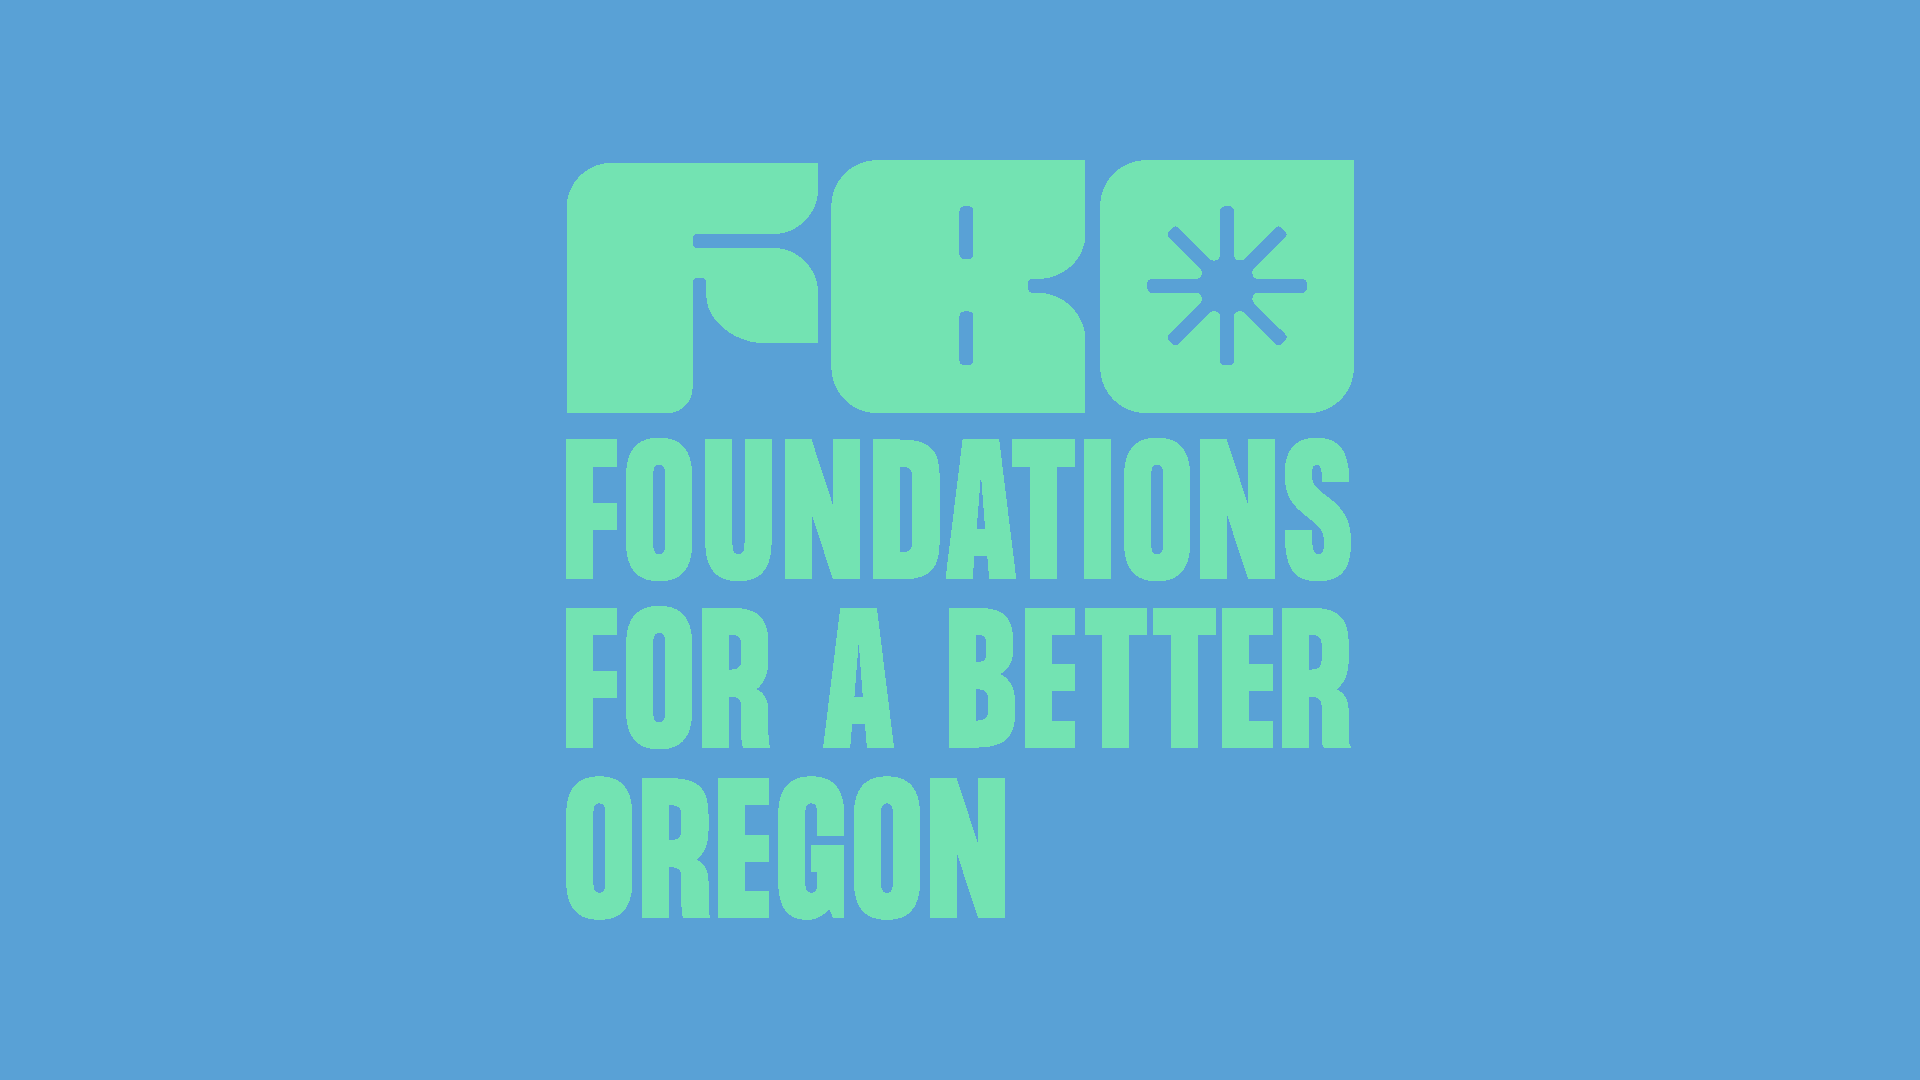 Our new brand identity at Foundations for a Better Oregon.